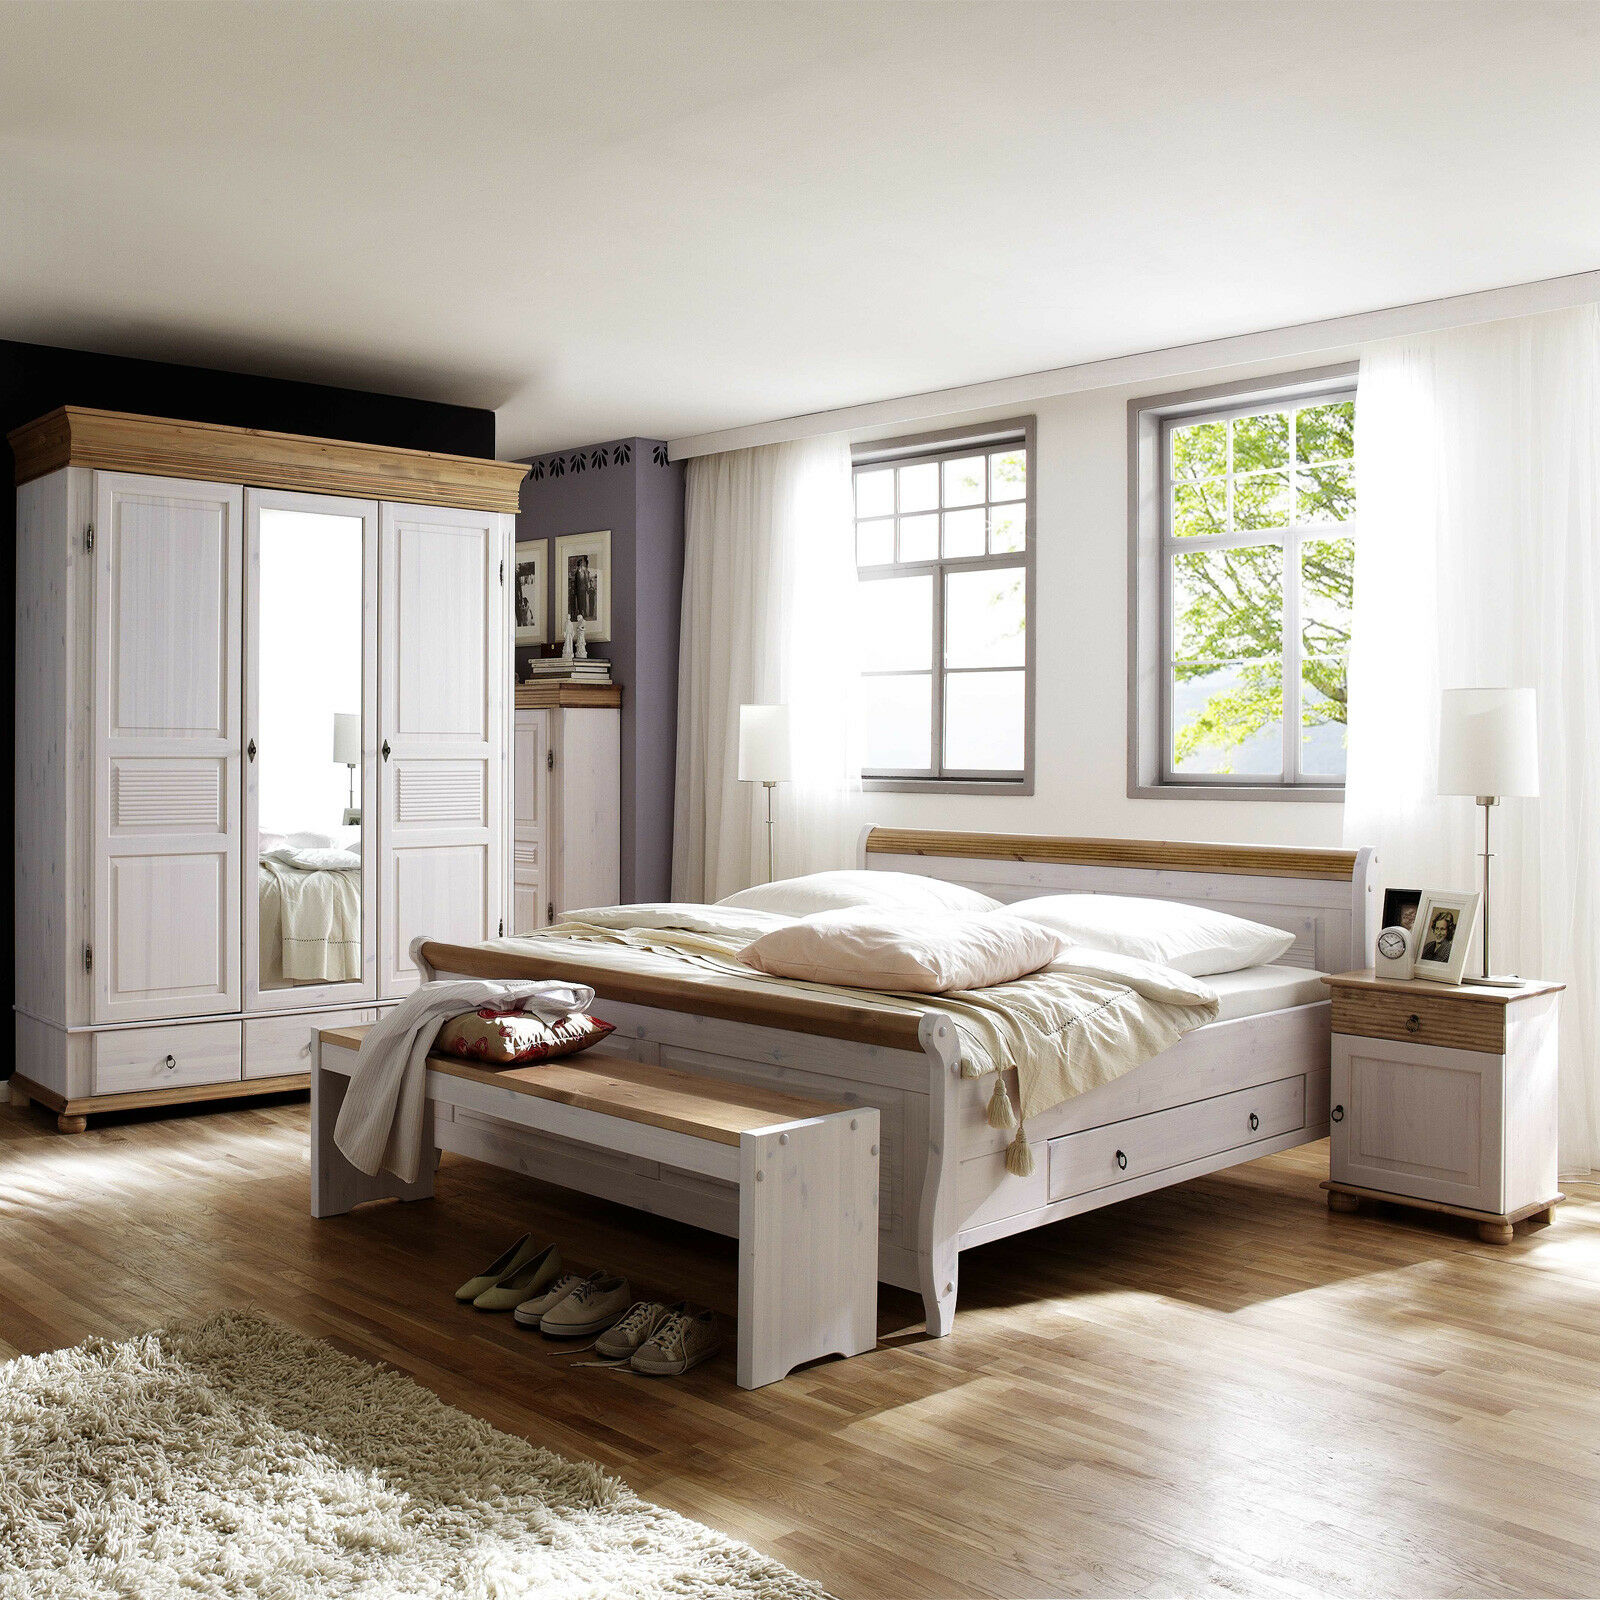 schlafzimmer kiefer massiv honigfarben ebay bettw sche kinder bettdecken test stiftung. Black Bedroom Furniture Sets. Home Design Ideas